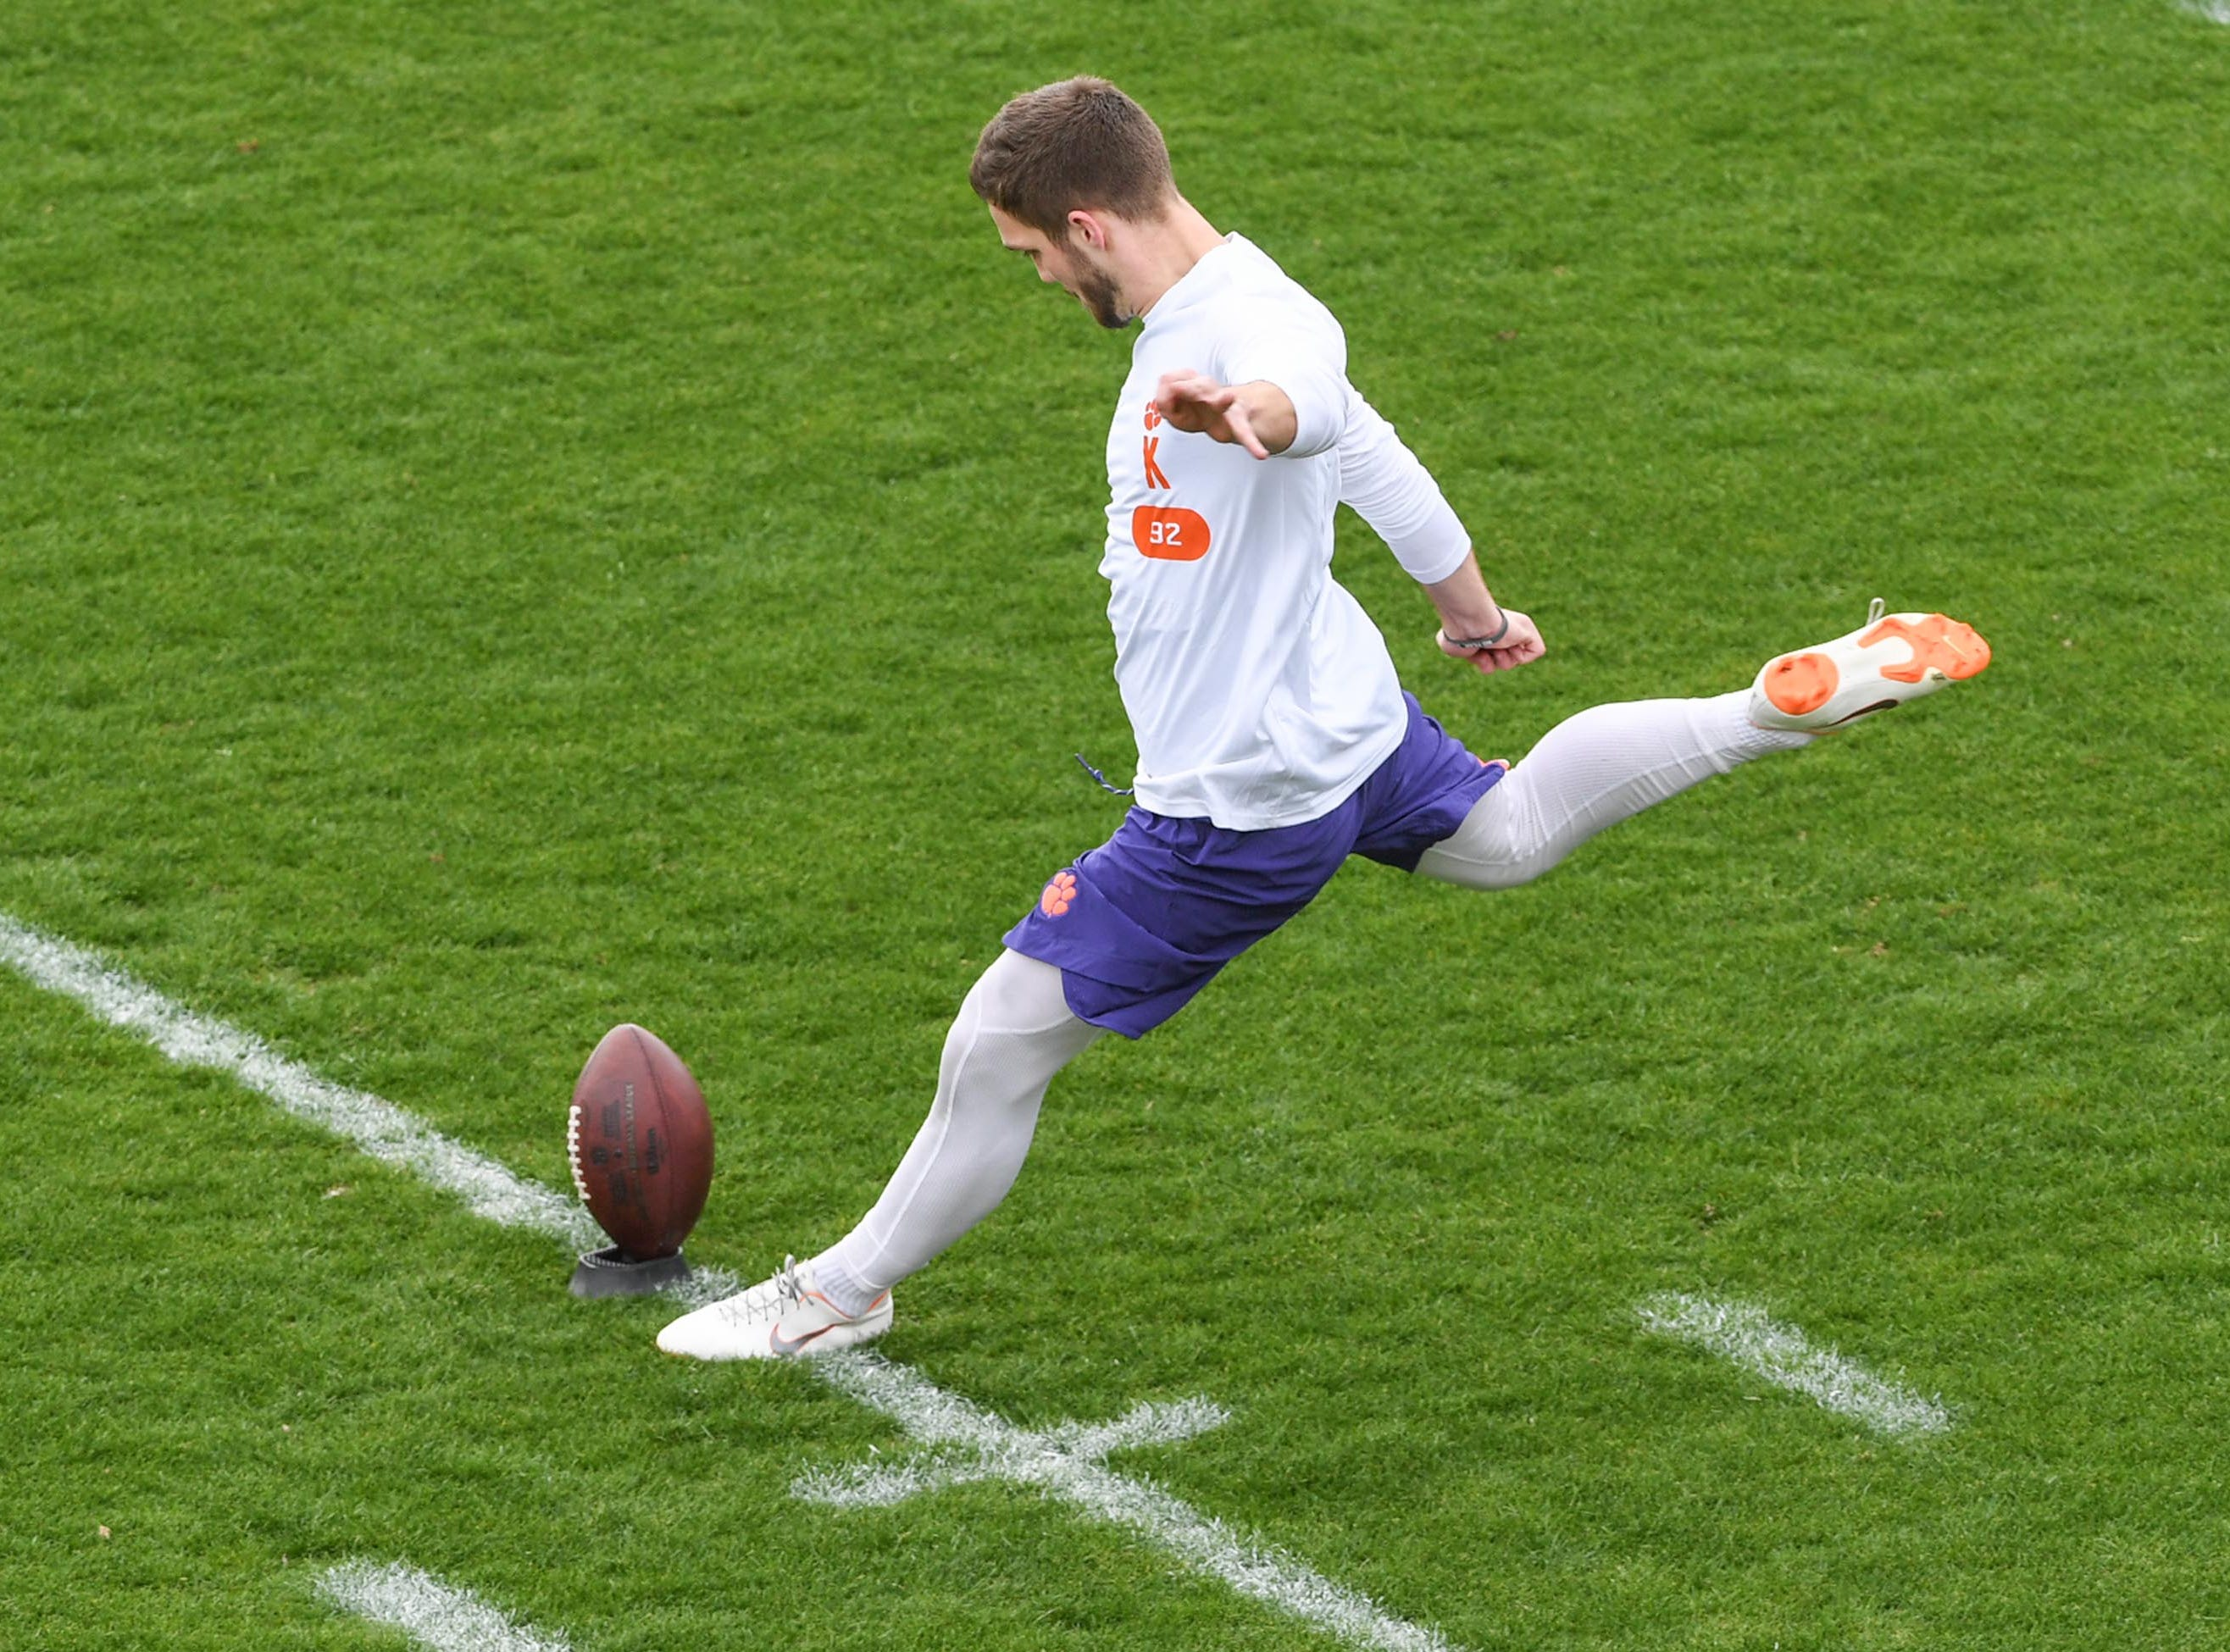 Kicker Greg Huegel during Clemson pro day at the Poe Indoor Facility in Clemson Thursday, March 14, 2019.